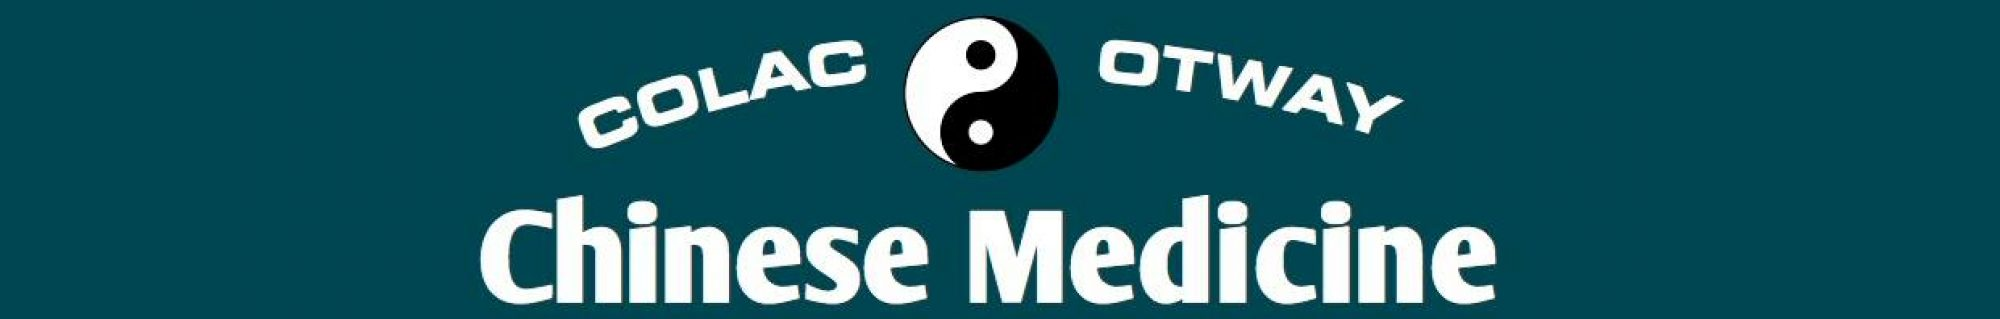 Colac Otway Chinese Medicine